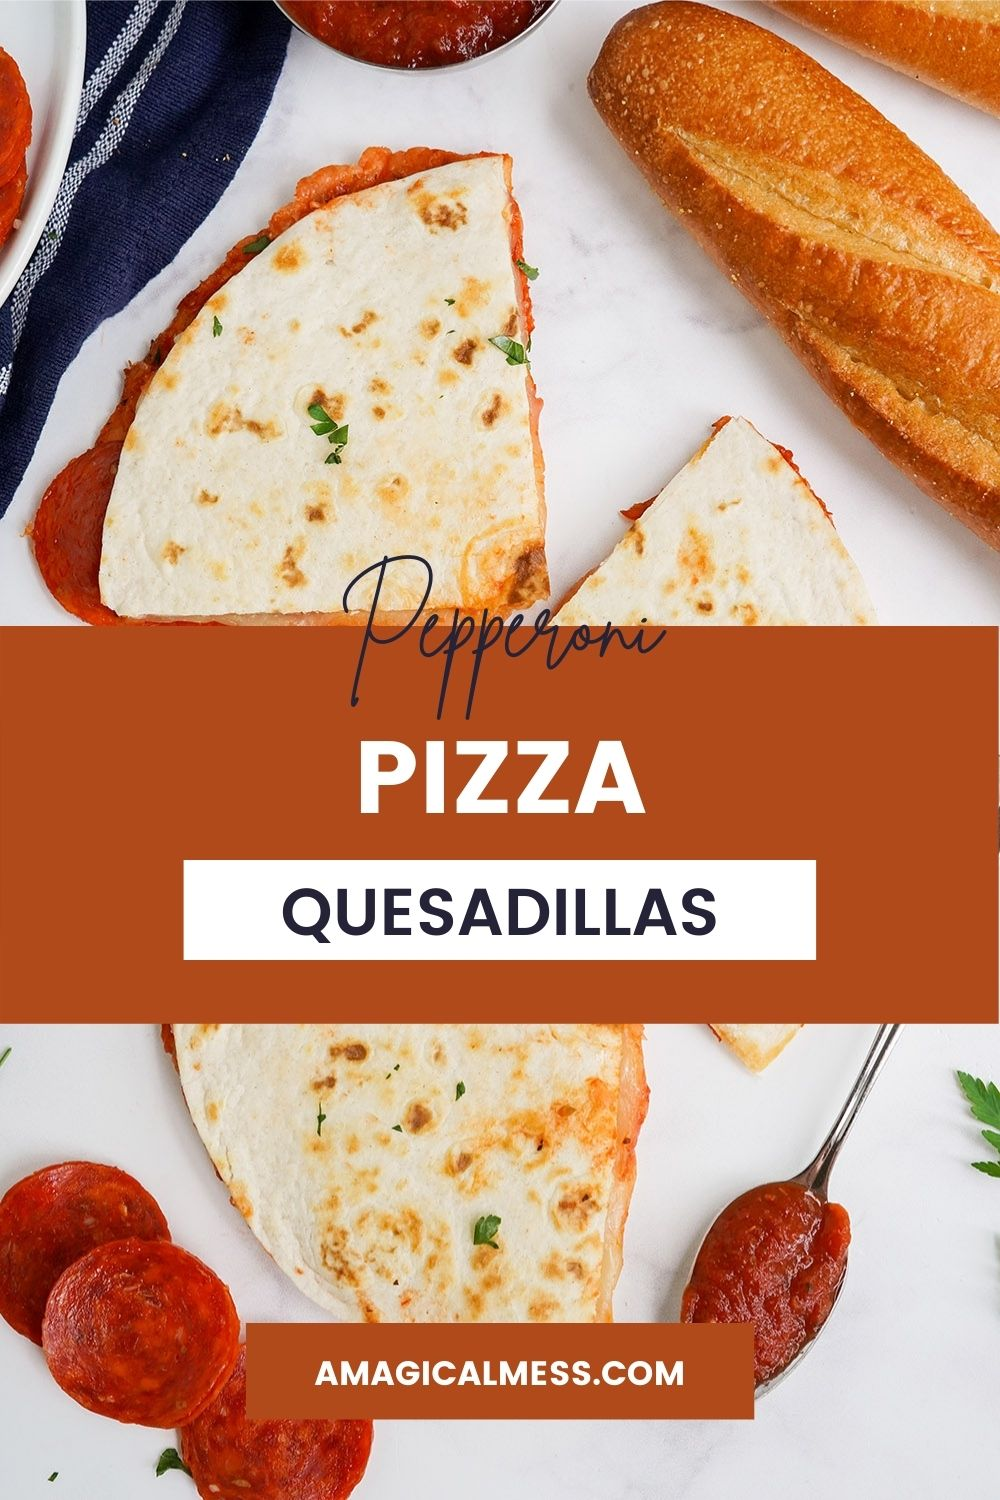 Overhead image of pizza quesadillas with bread, sauce, and pepperoni on the table.